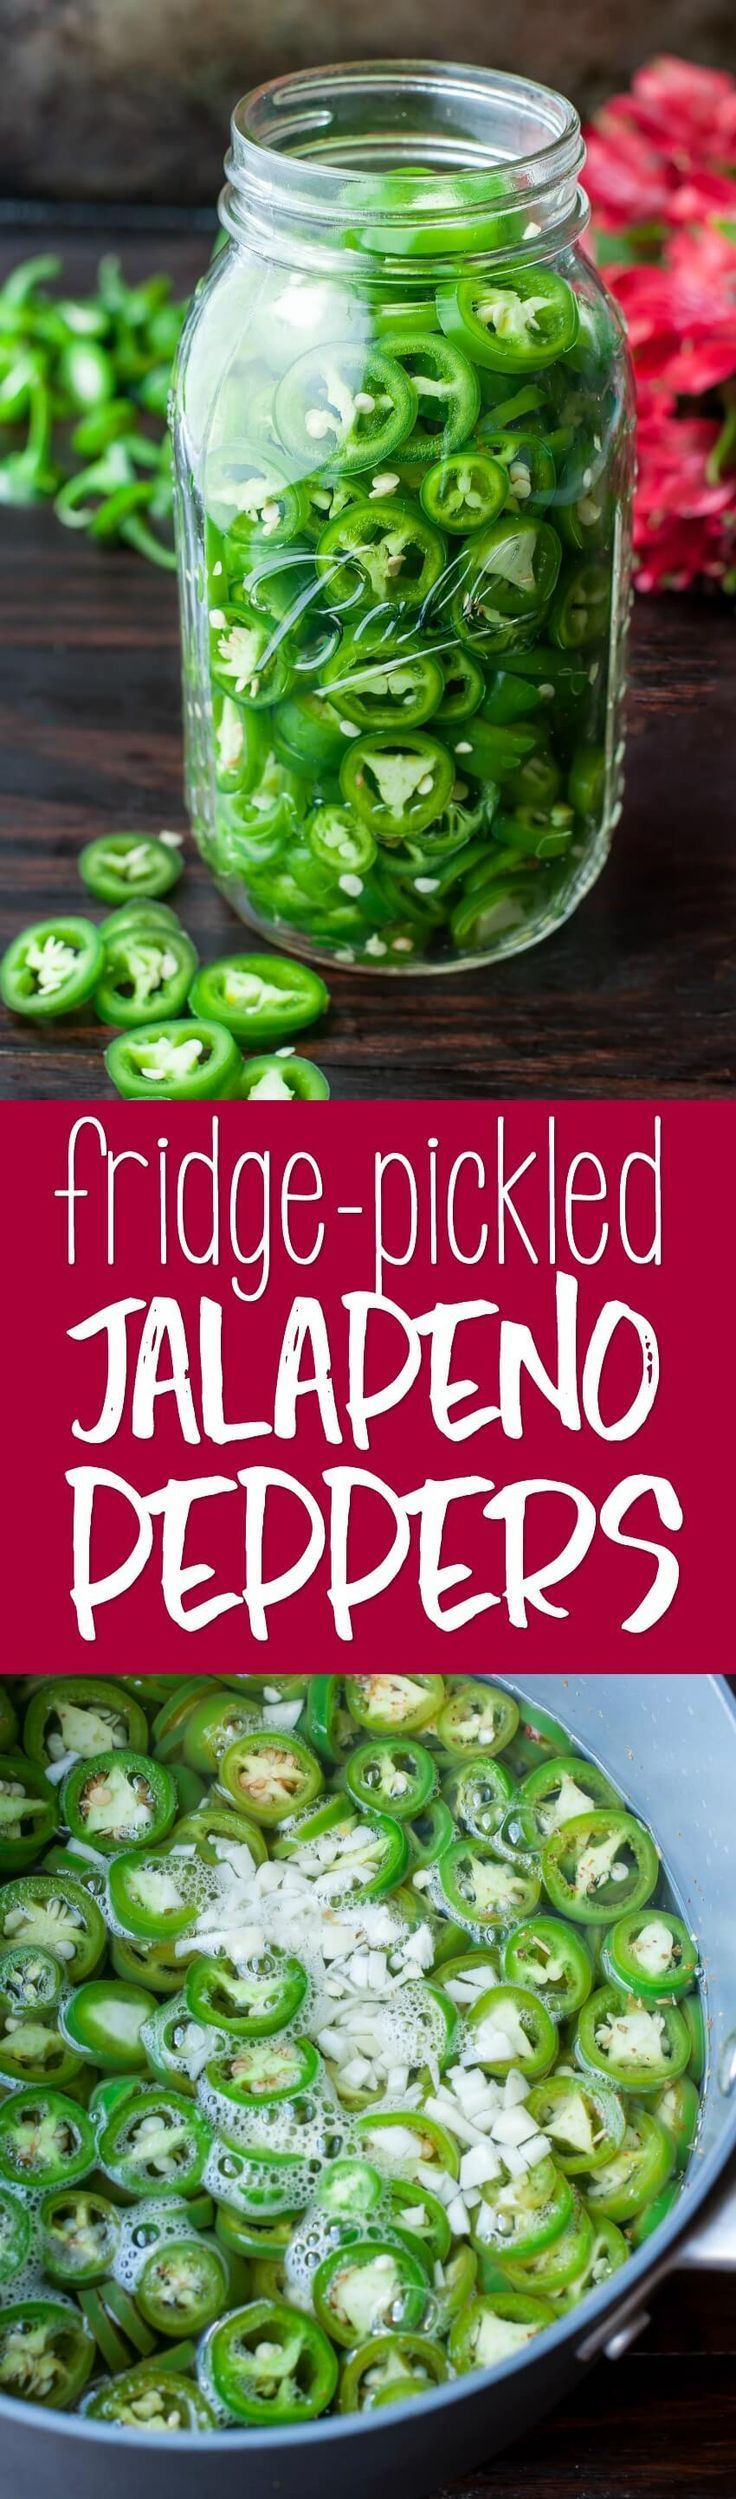 Skip the store and make your own pickled peppers at home. These easy peasy…